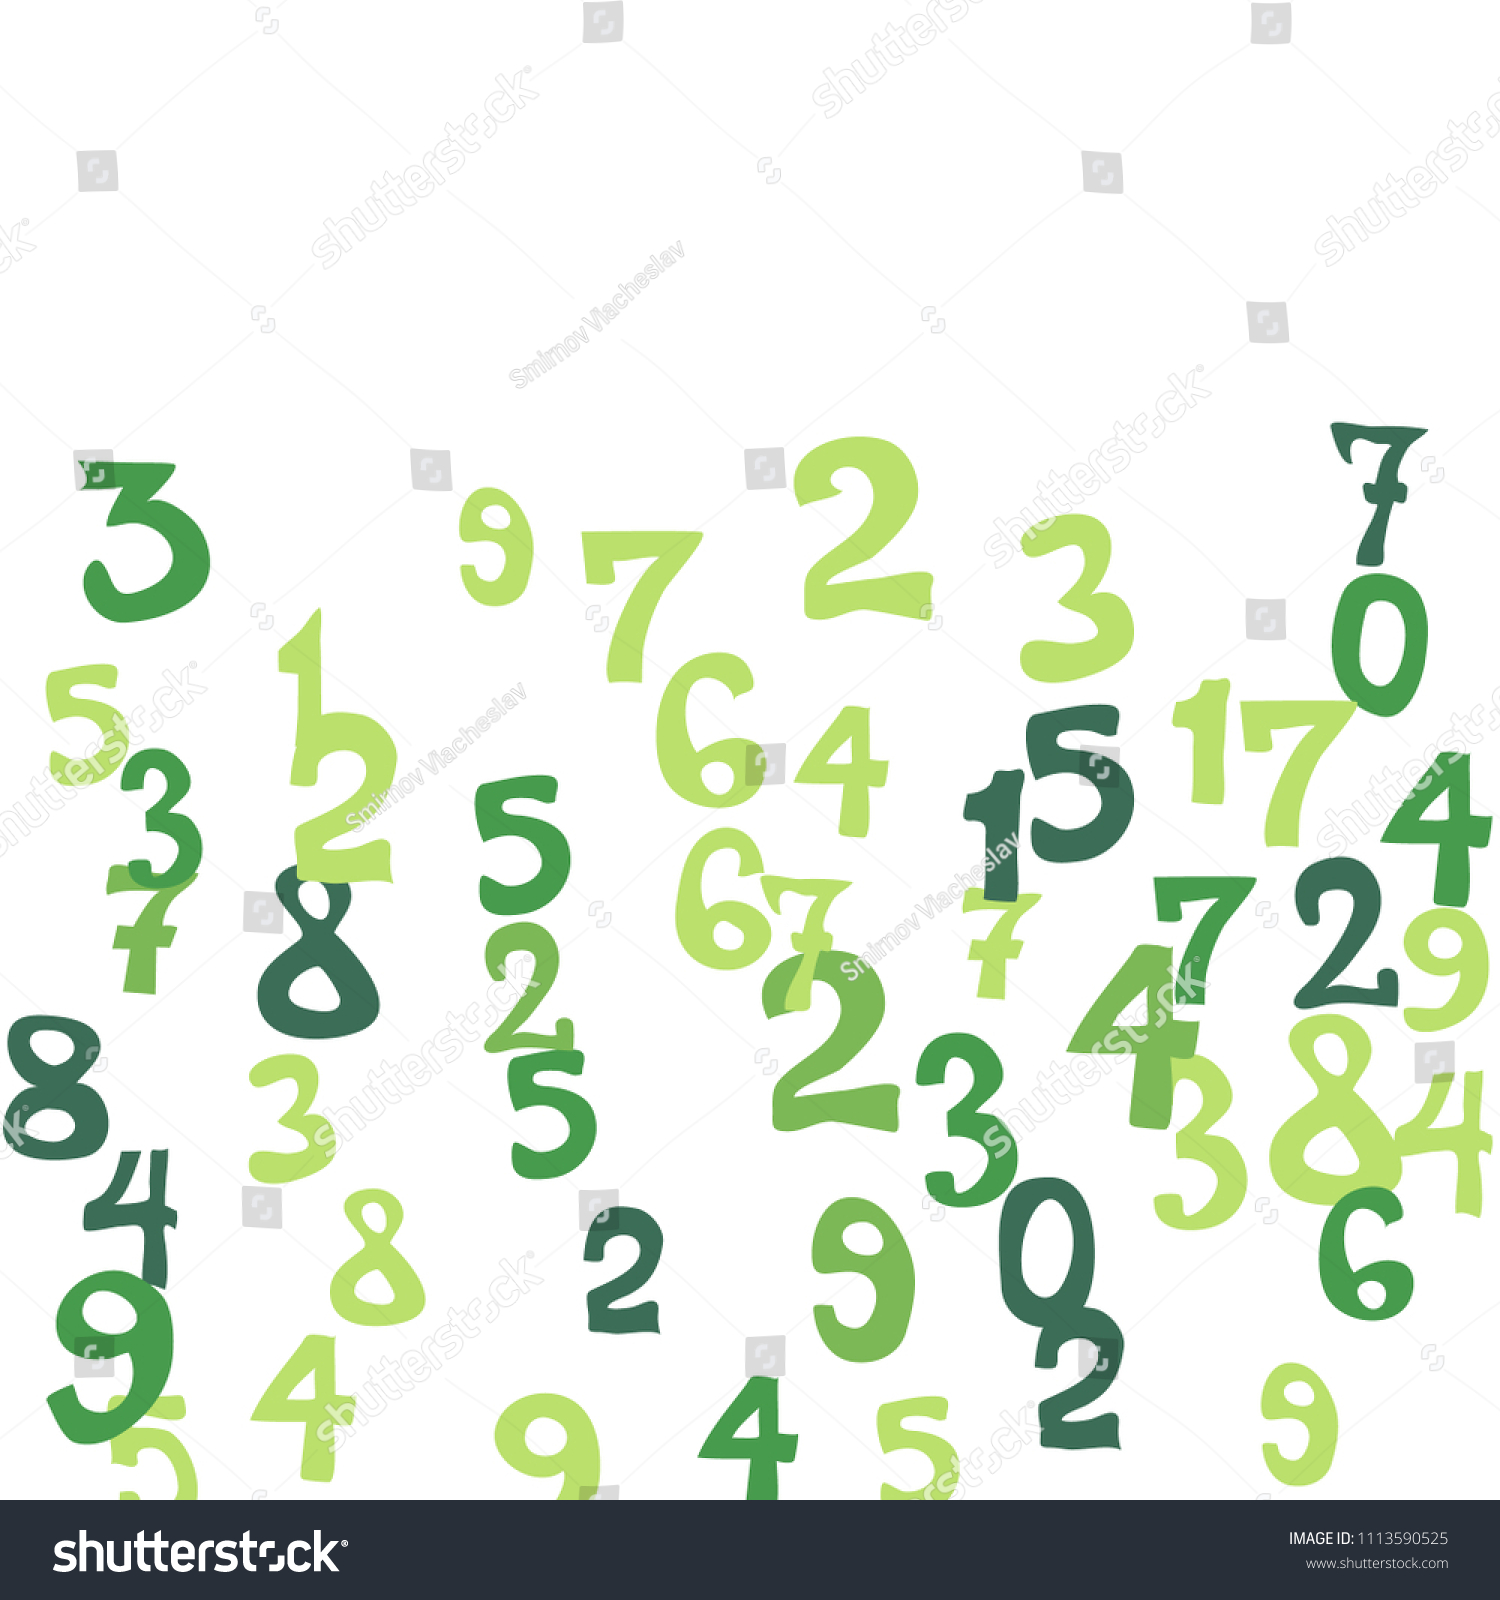 Falling Numbers Abstract Background Abstract Background Stock Vector ...